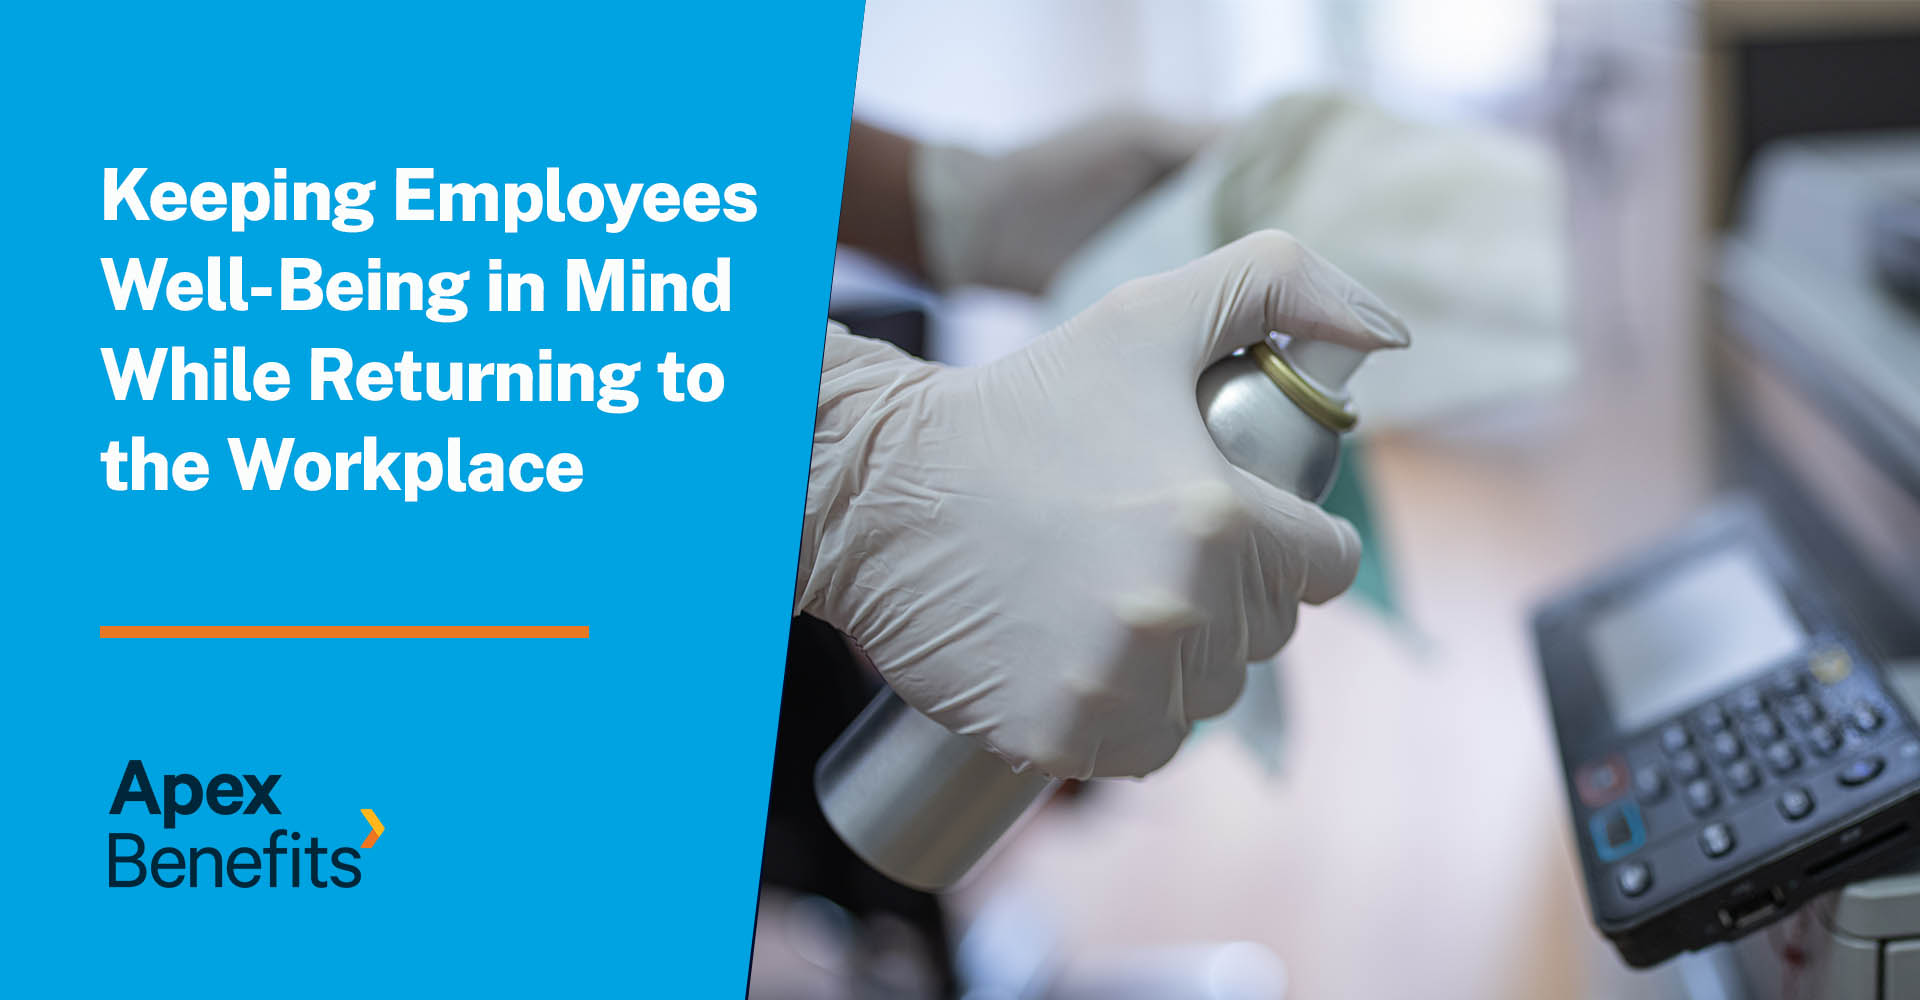 Keeping Employees' Well-Being in Mind